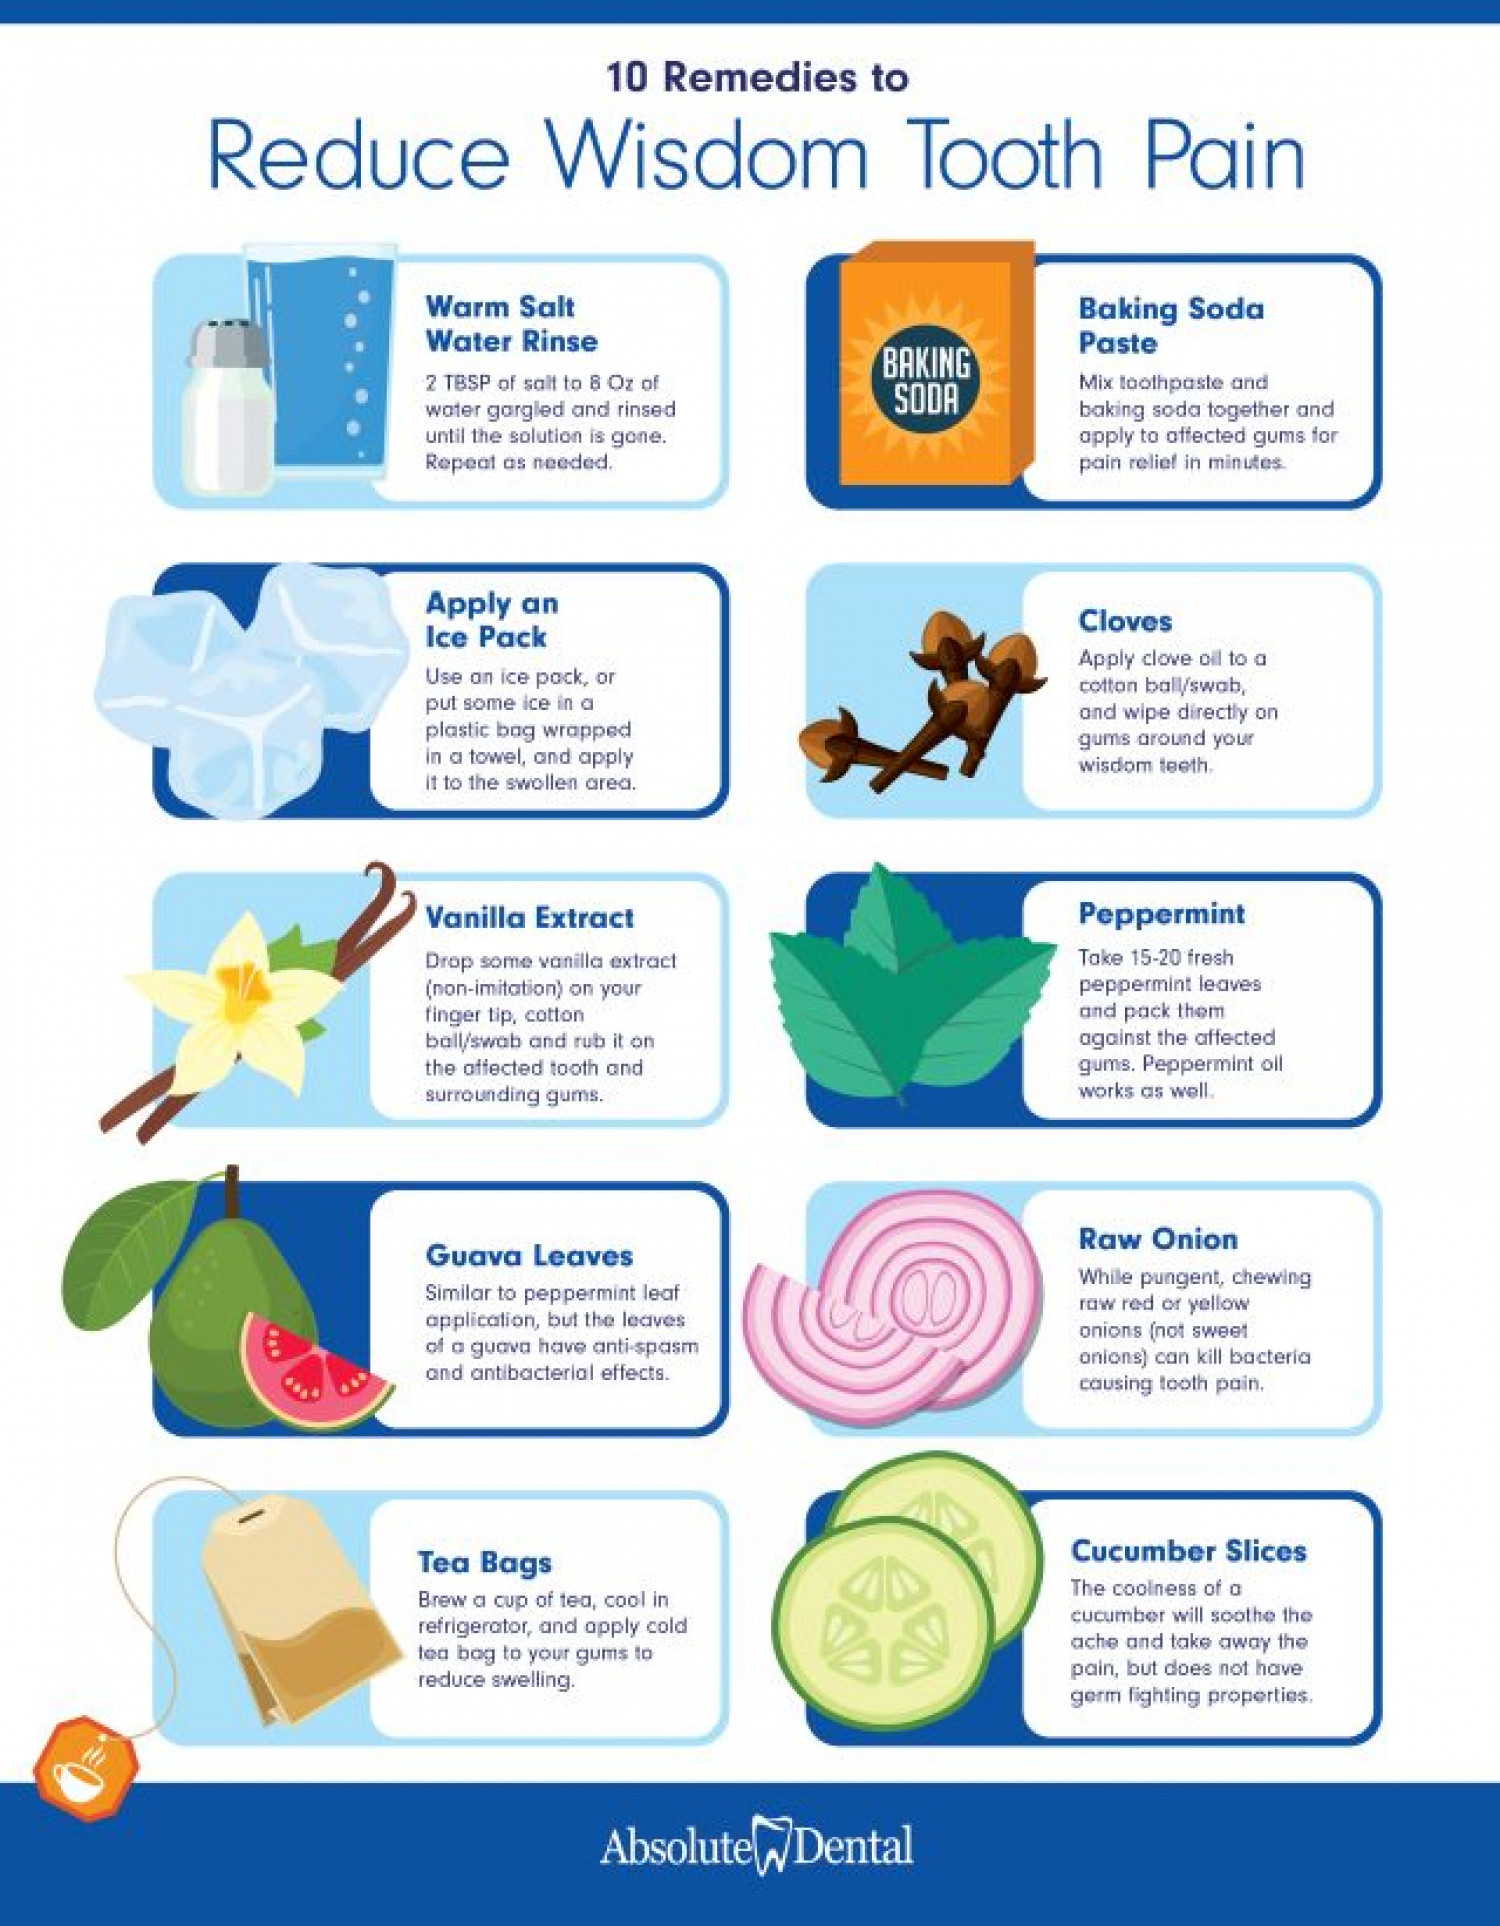 10 Remedies to Reduce Wisdom Tooth Pain Infographic